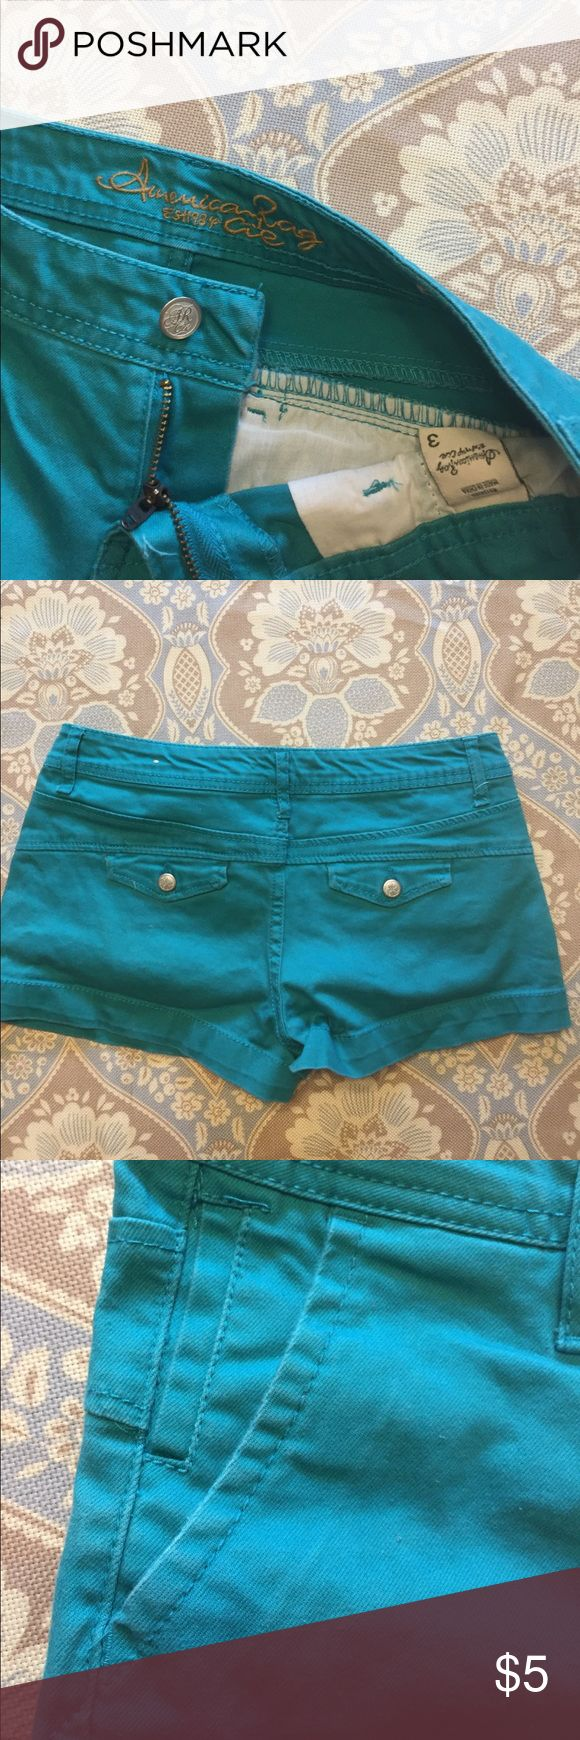 Women's turquoise shorts Size 3 gently used shorts. Color vibrant except some slight fading near the pockets (pictured).  Slightly loose thread (pictured) near the crease. Very comfortable and in great condition. Material is stretchy and mid/low rise. American Rag Shorts